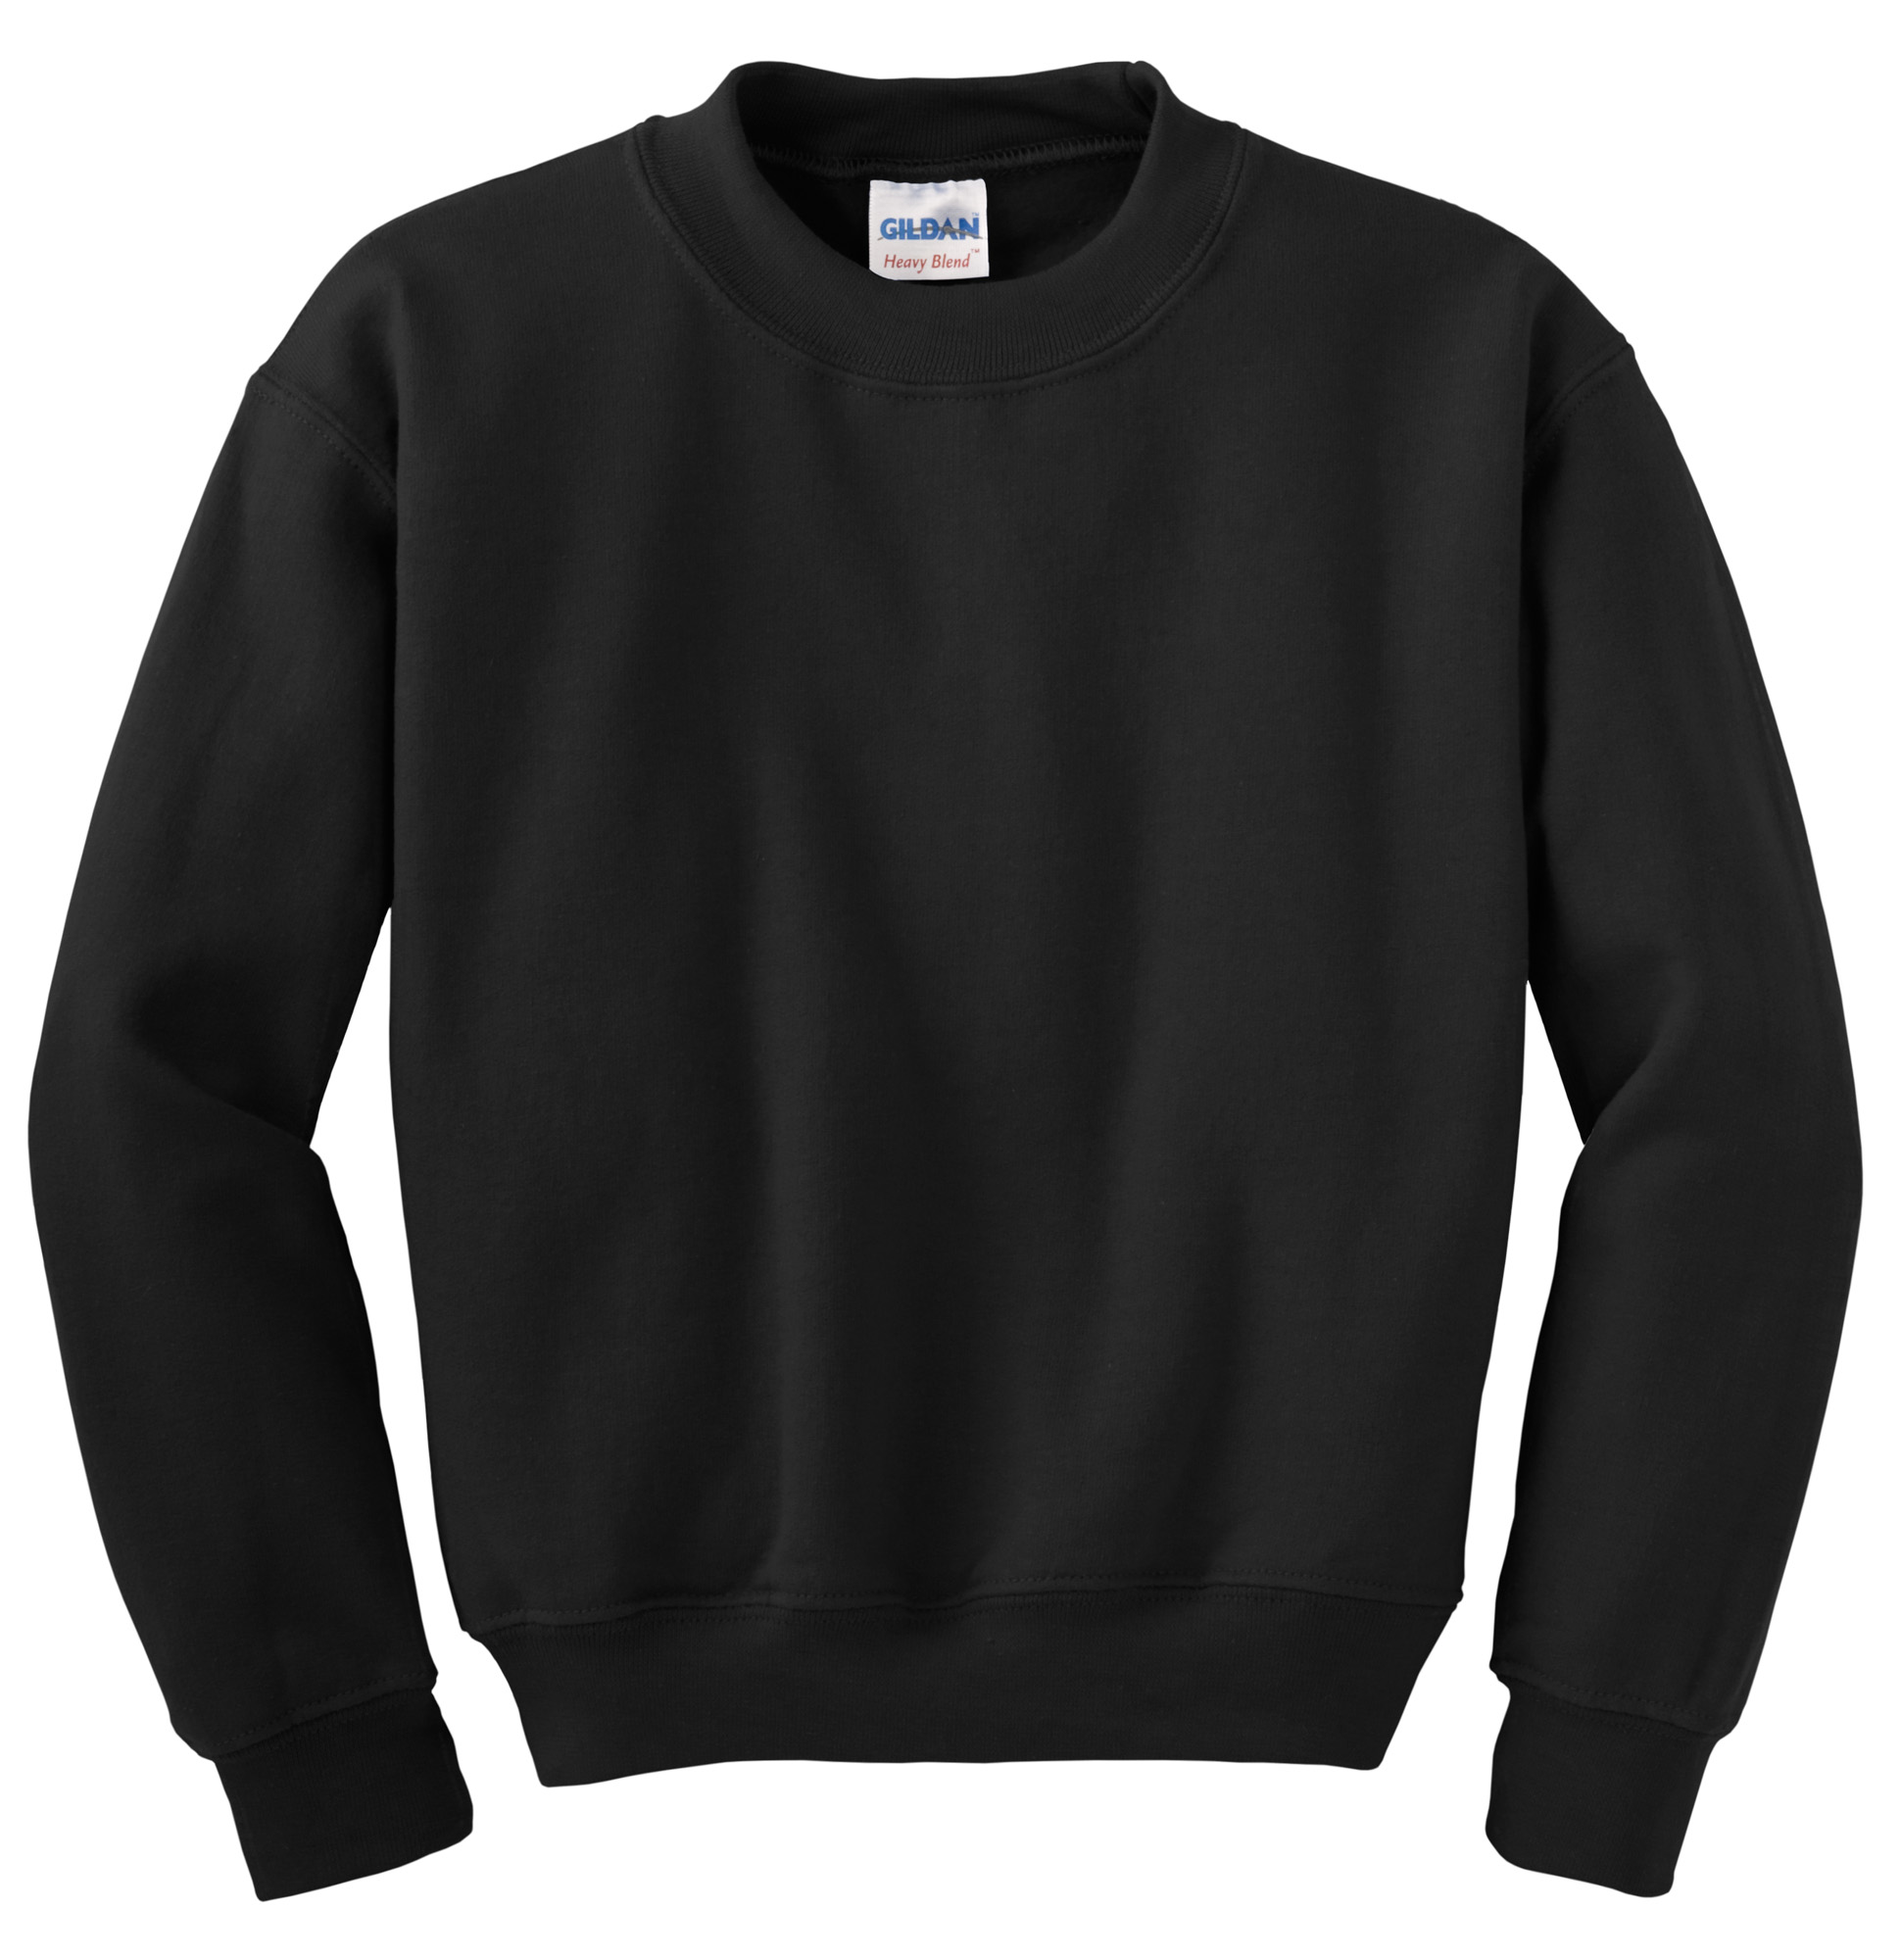 Gildan Heavy Blend Crewneck Sweater black